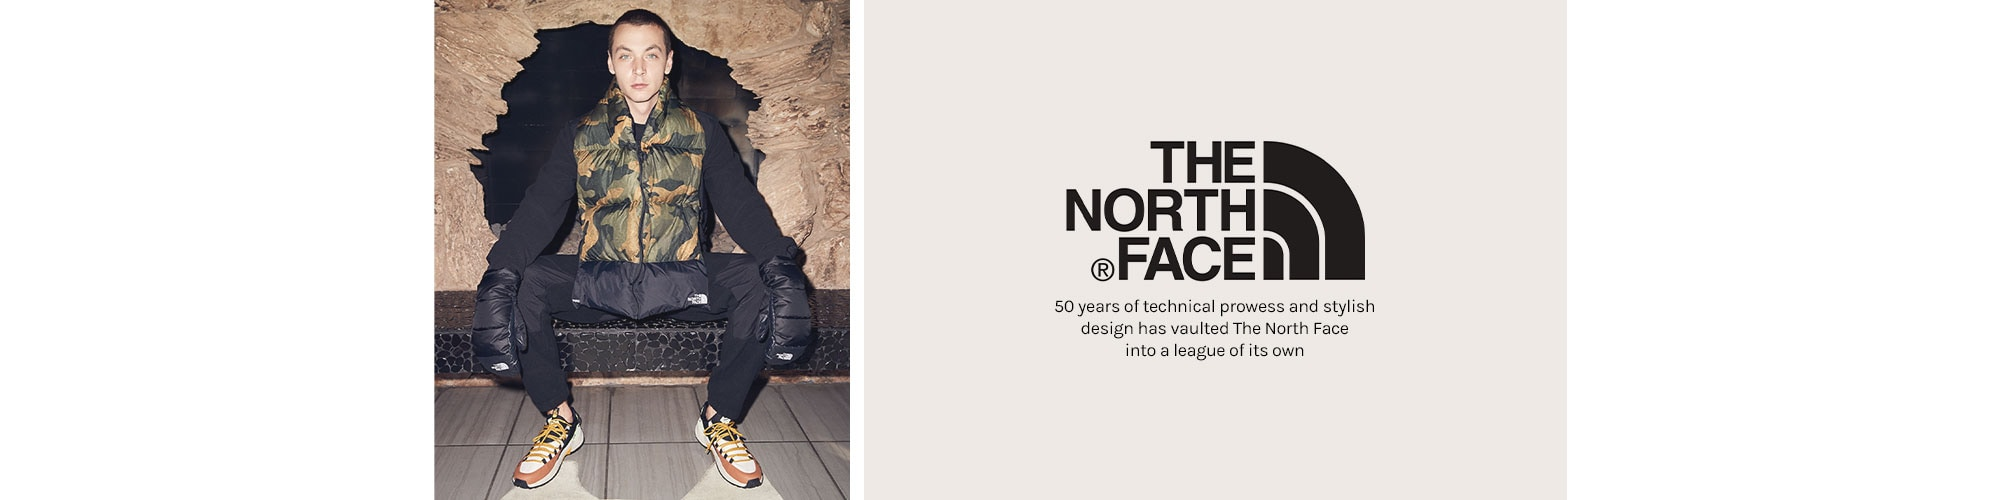 The North Face. 50 years of technical prowess and stylish design has vaulted The North Face into a league of its own.